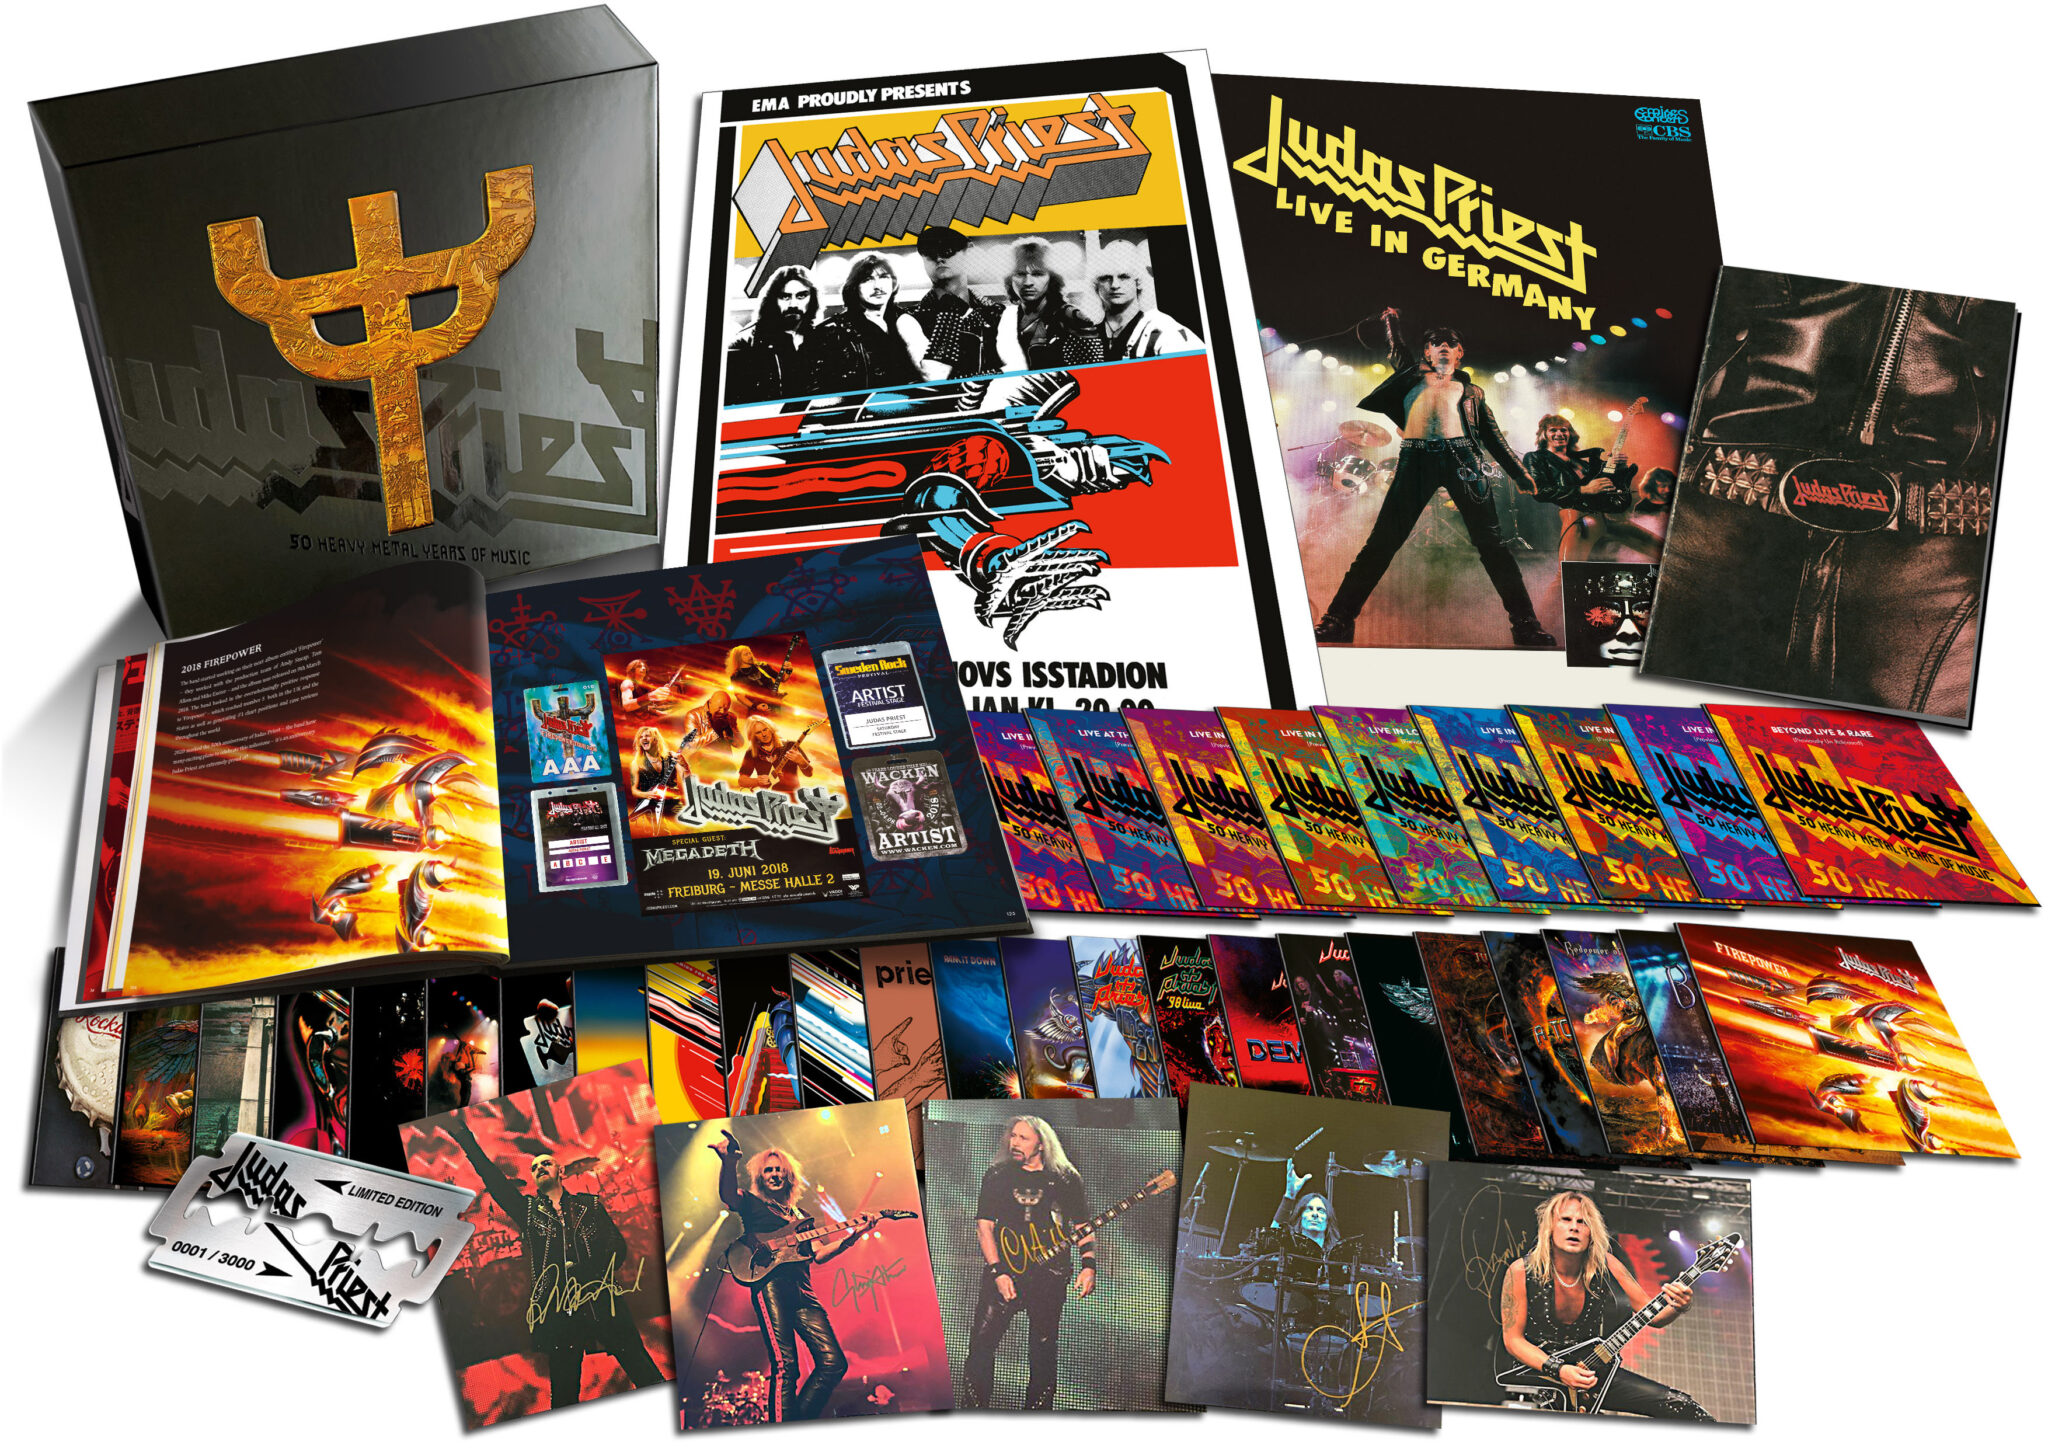 Judas Priest To Release 50 Heavy Metal Years Of Music Limited Box-Set